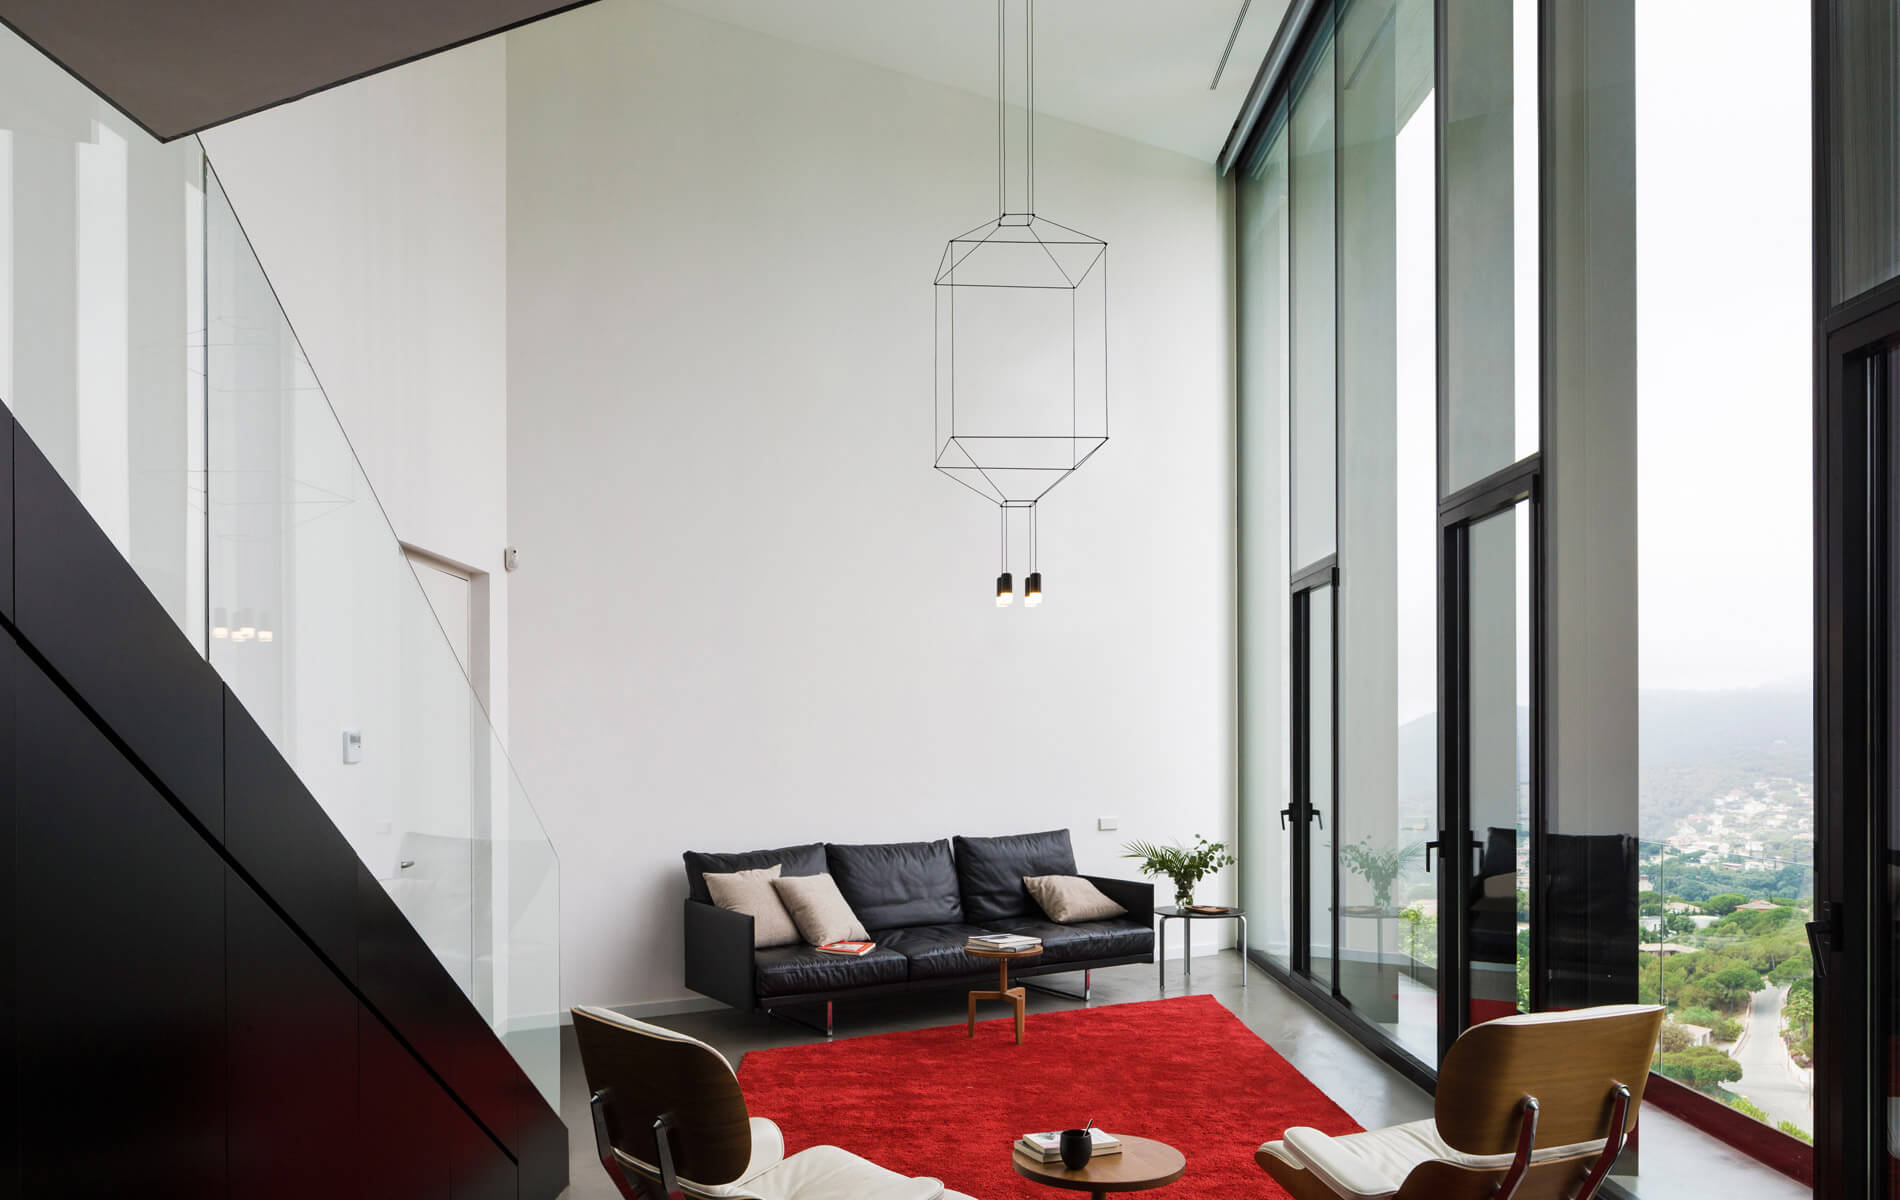 More information of Vibia WIREFLOW 0311 hanging lamp